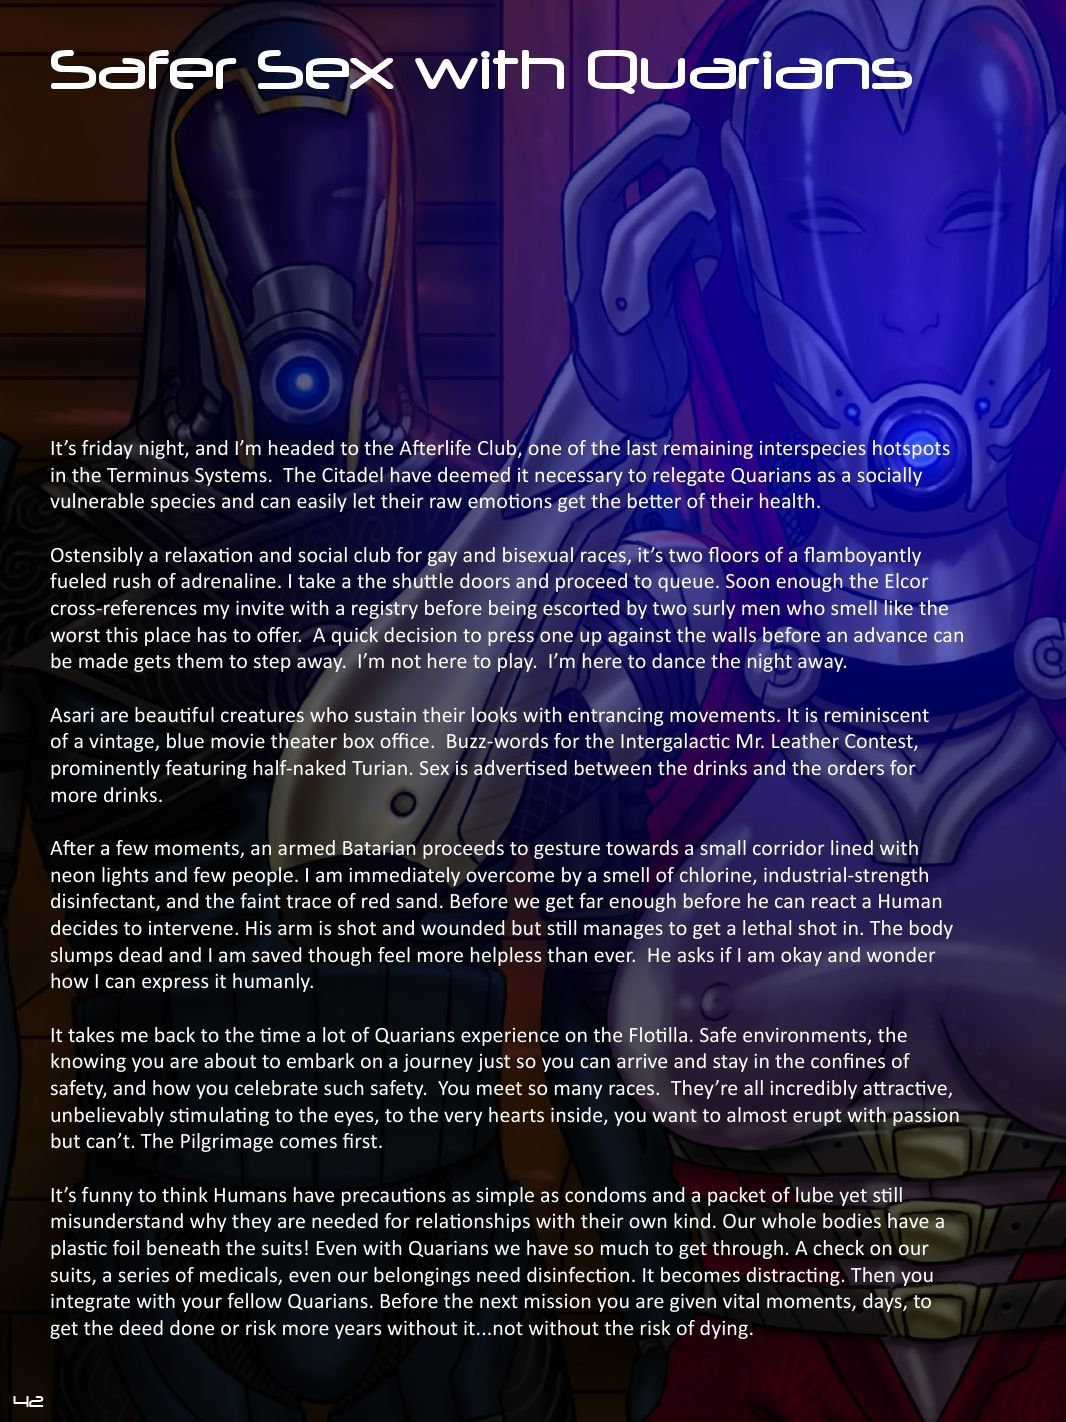 FORNAX_The_galaxys_finest_xenophilia_(Mass_Effect) comix_58056.jpg